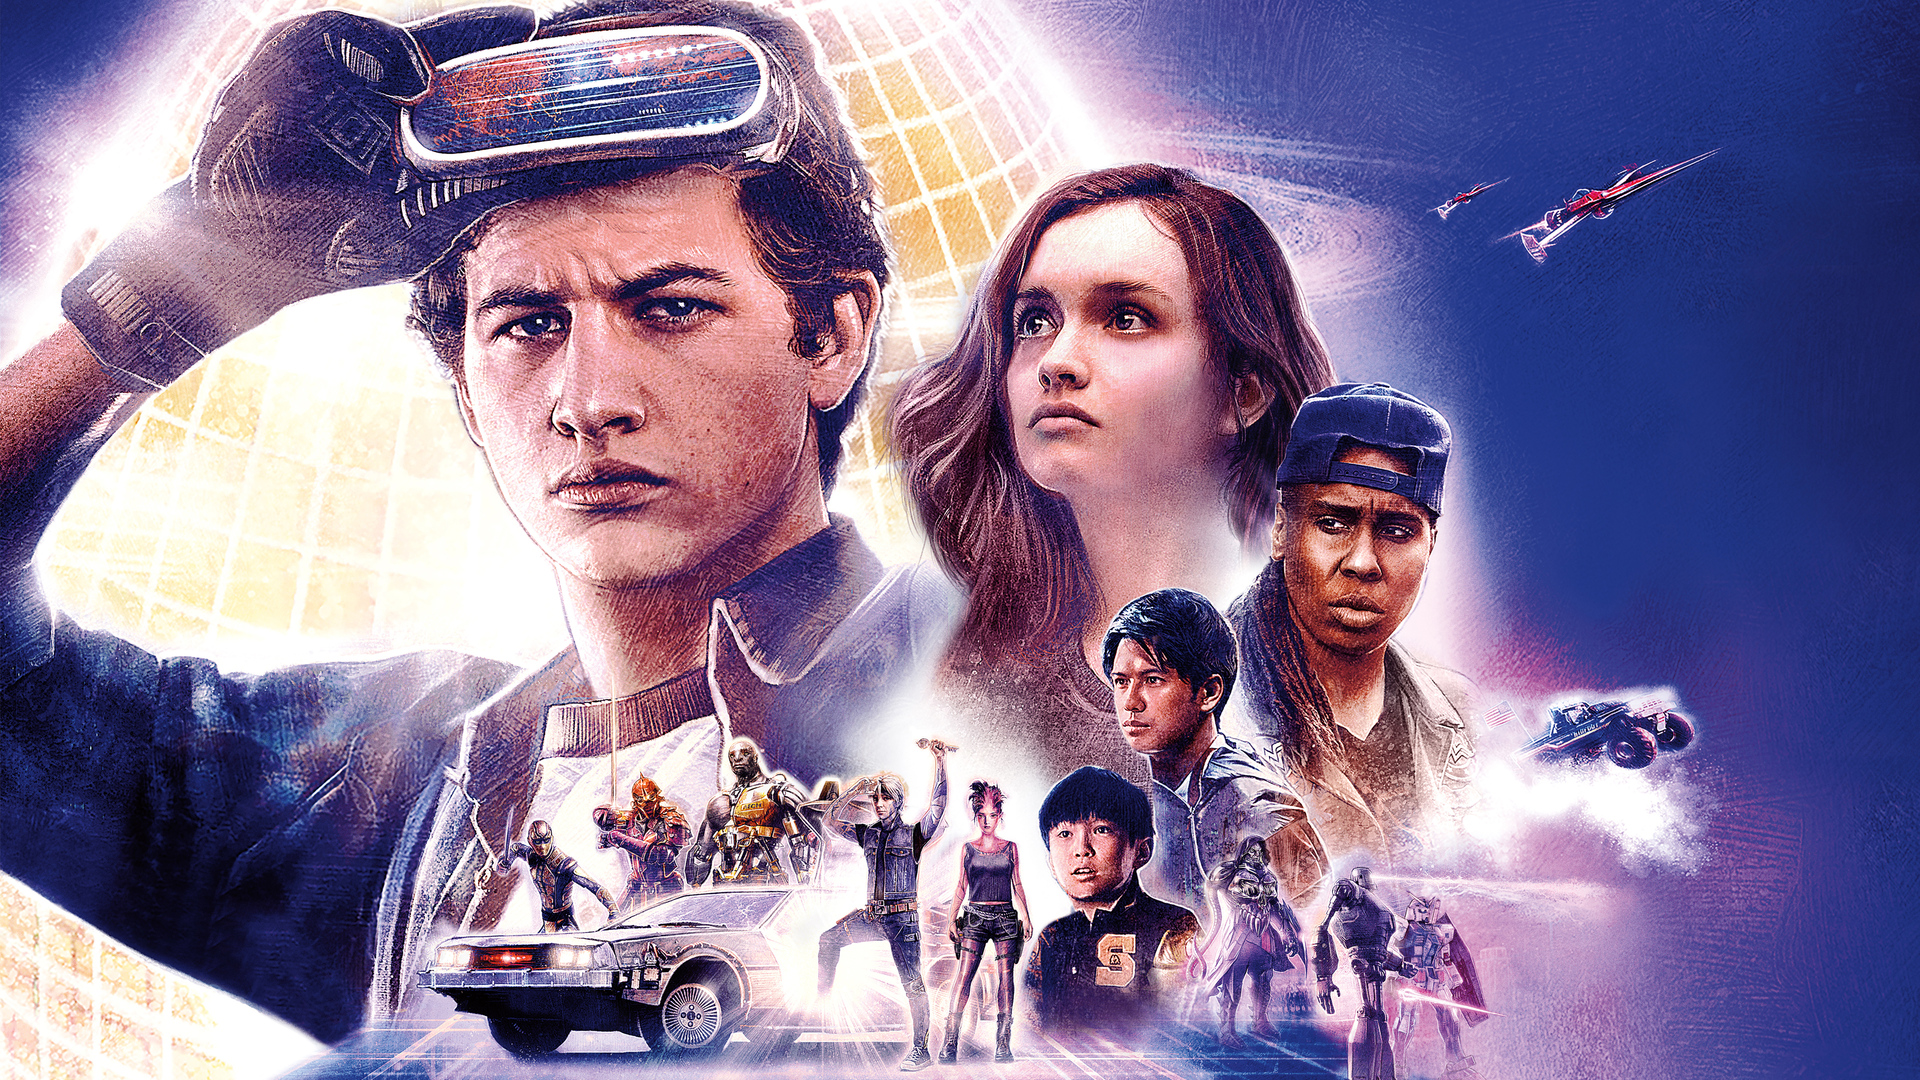 1920x1080 Ready Player One 2018 Movie Poster 4k Laptop ...